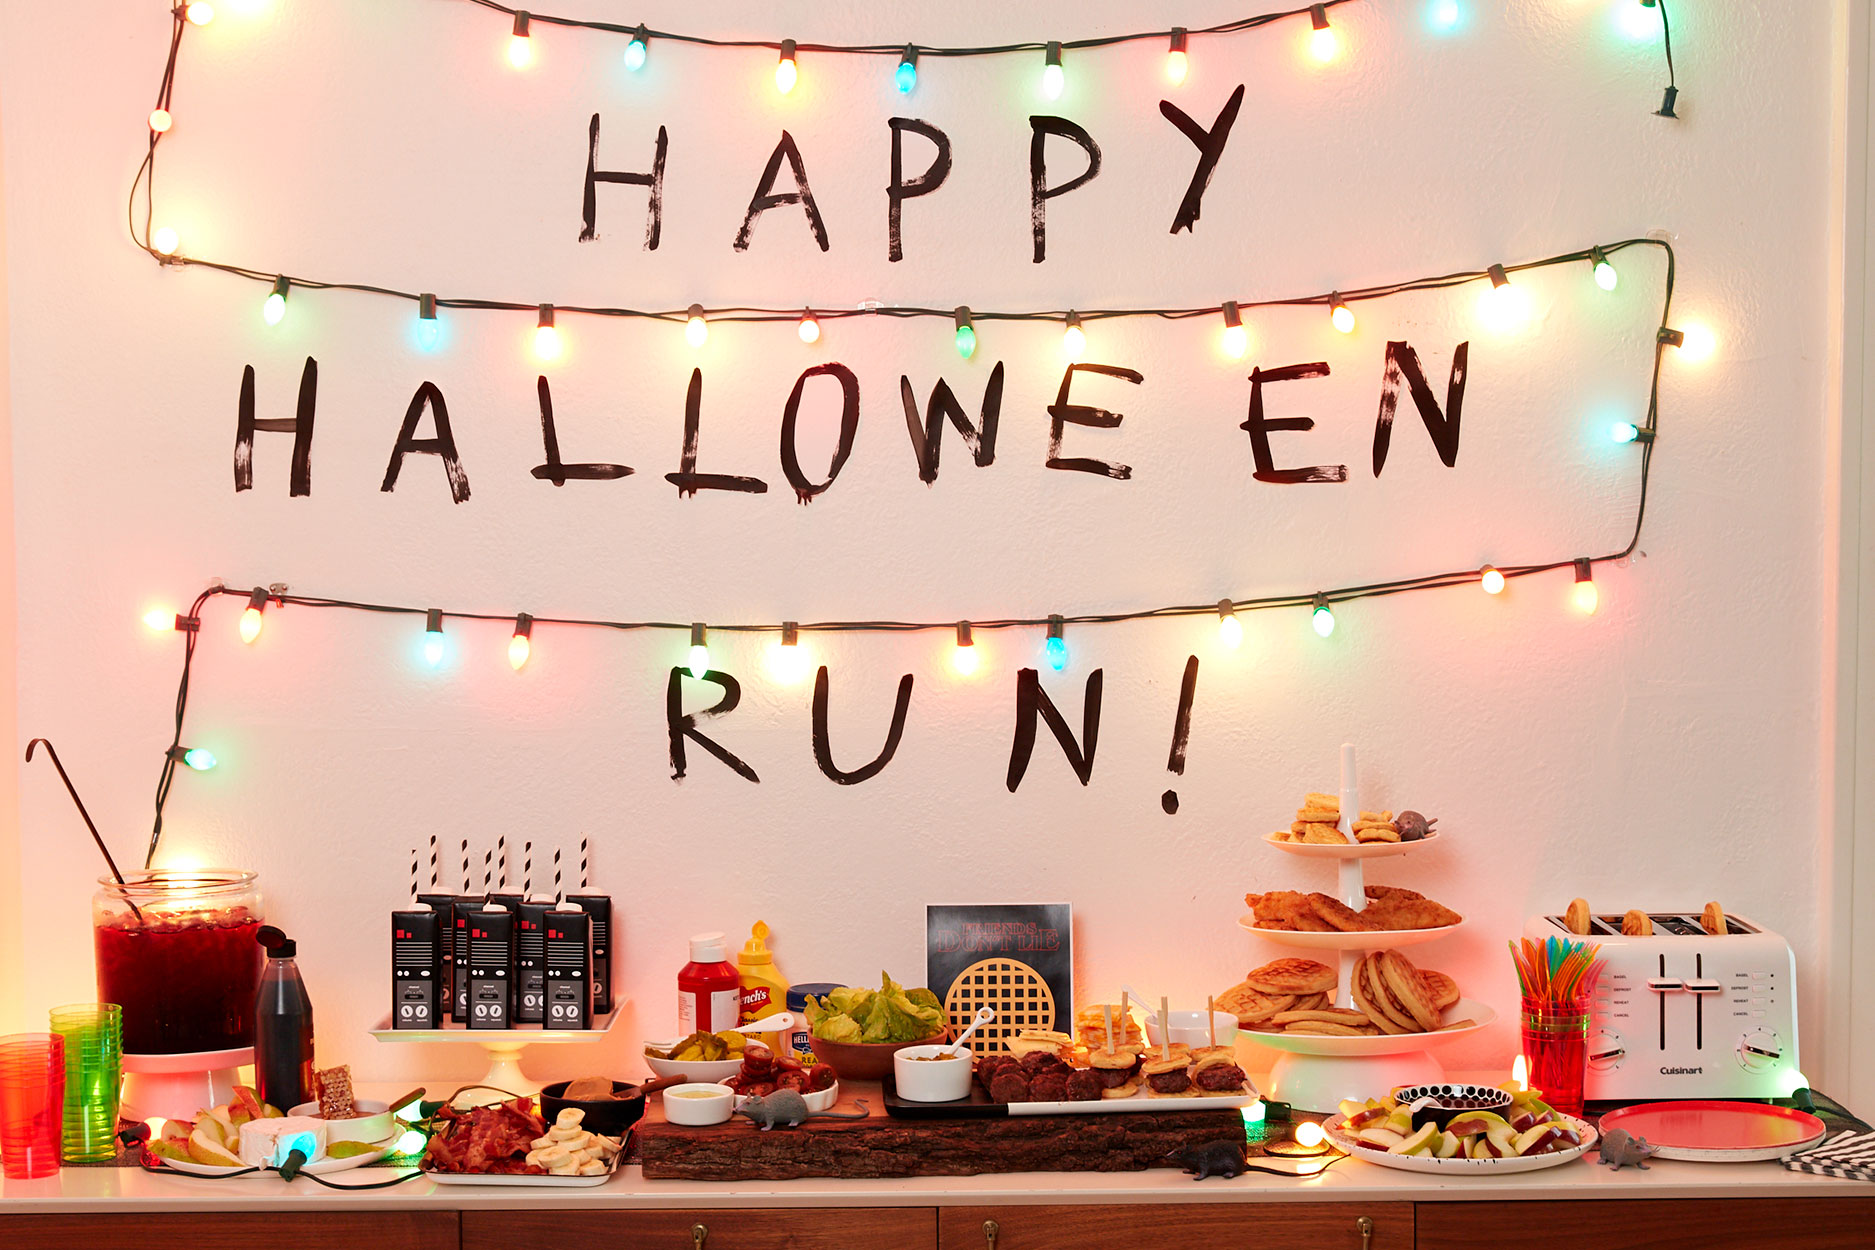 Stranger Things Halloween party